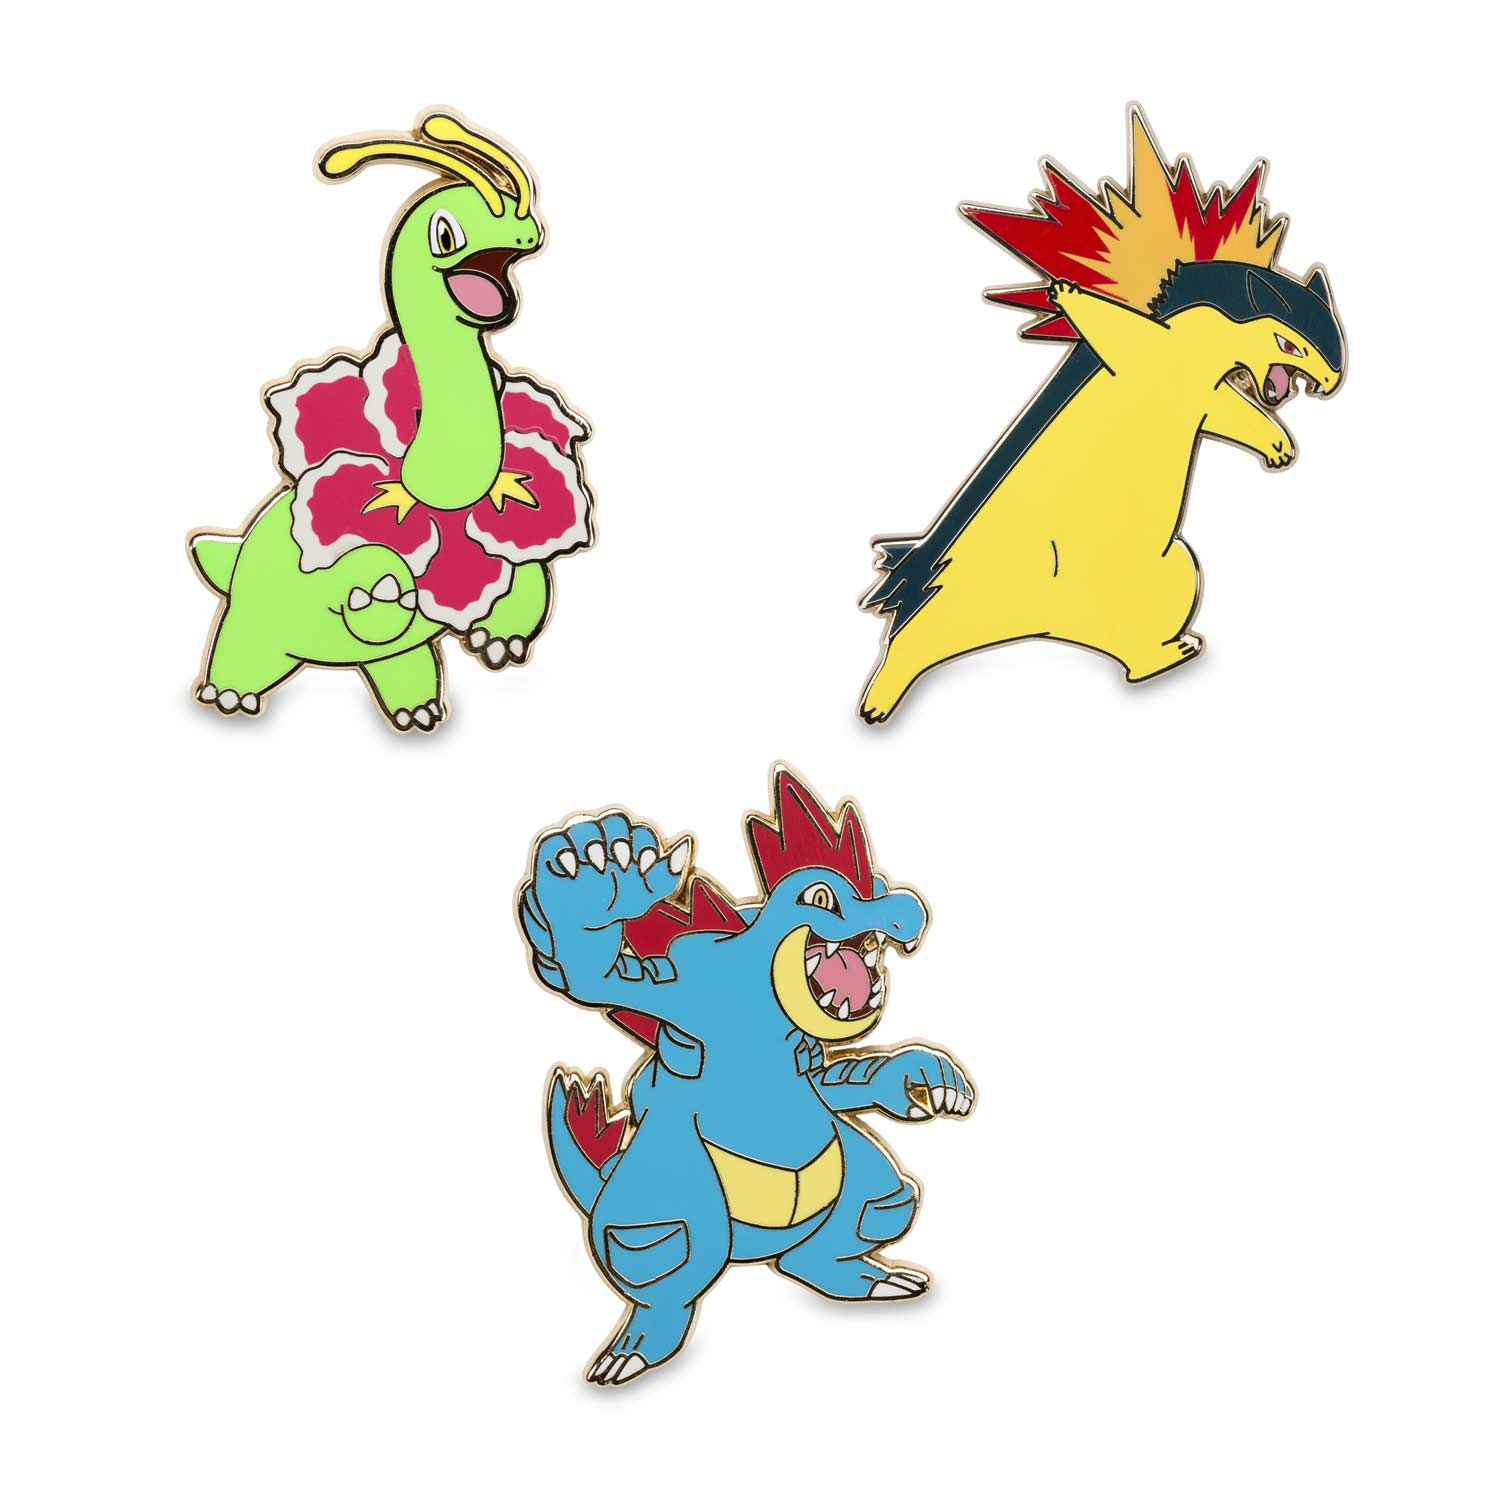 At Home Decor Meganium Typhlosion Feraligatr Pok 233 Mon Pins Johto